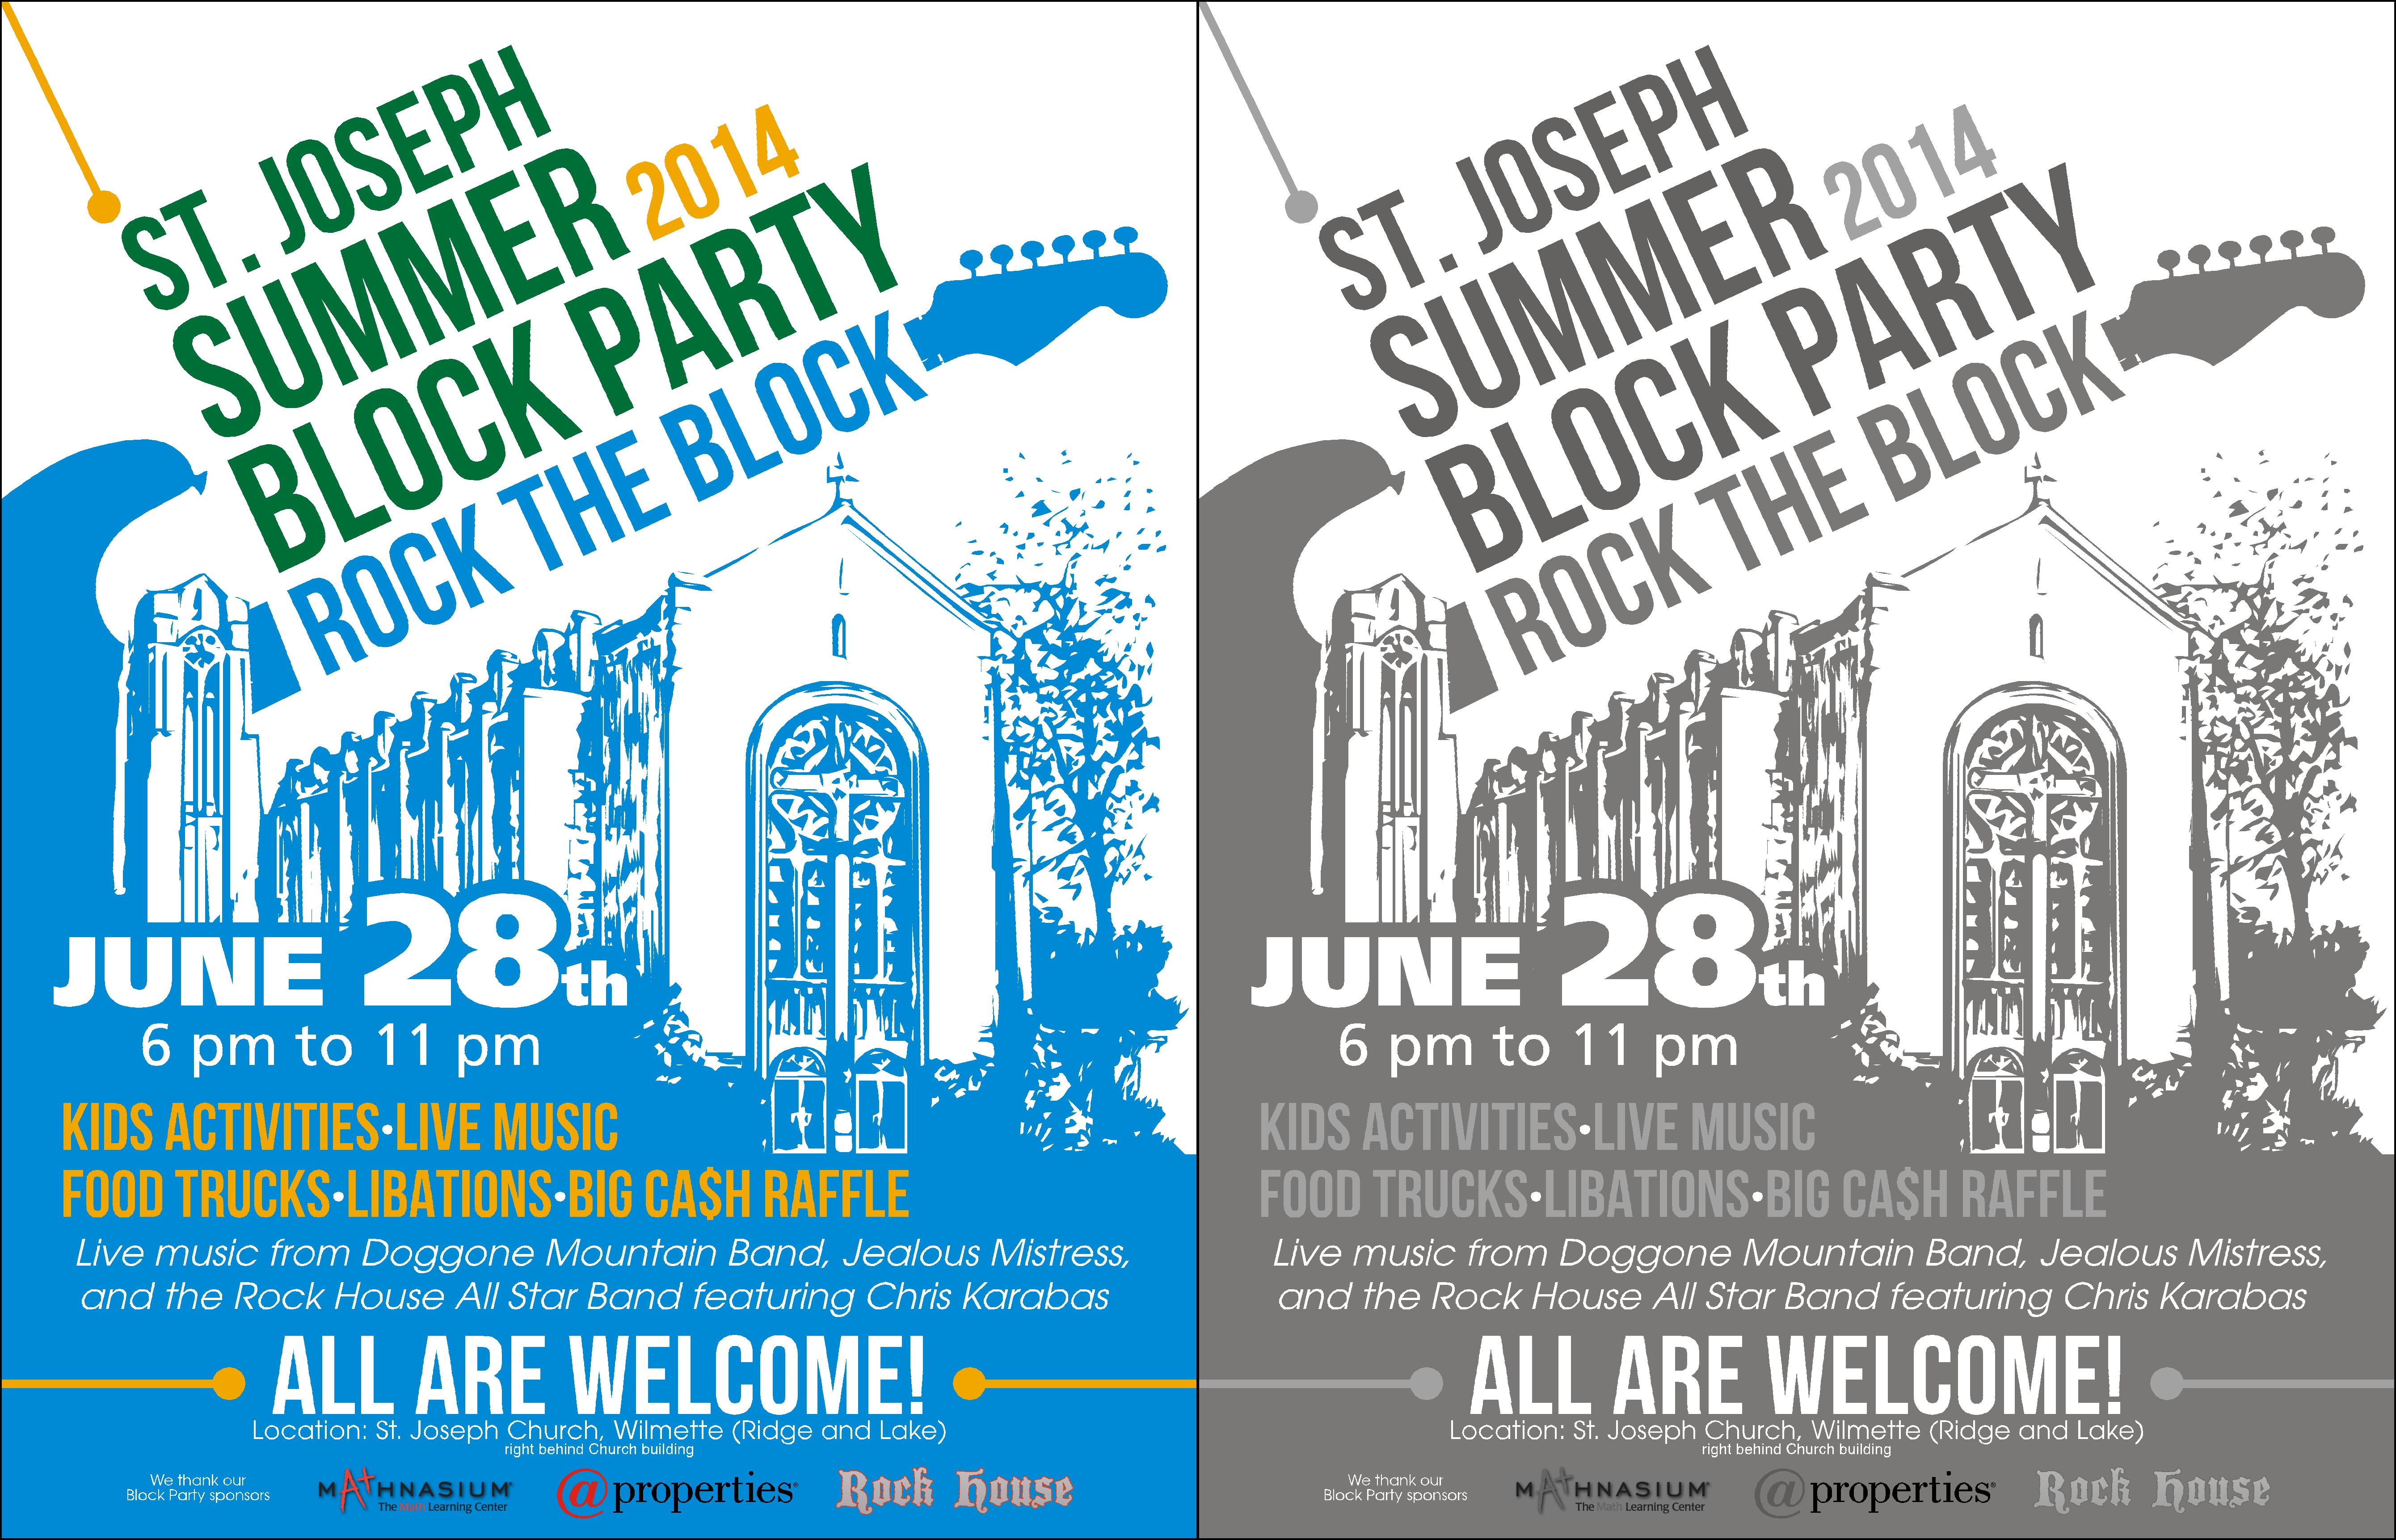 (Expedite) Poster for a Church Outdoor Block Party - Religion and Spirituality